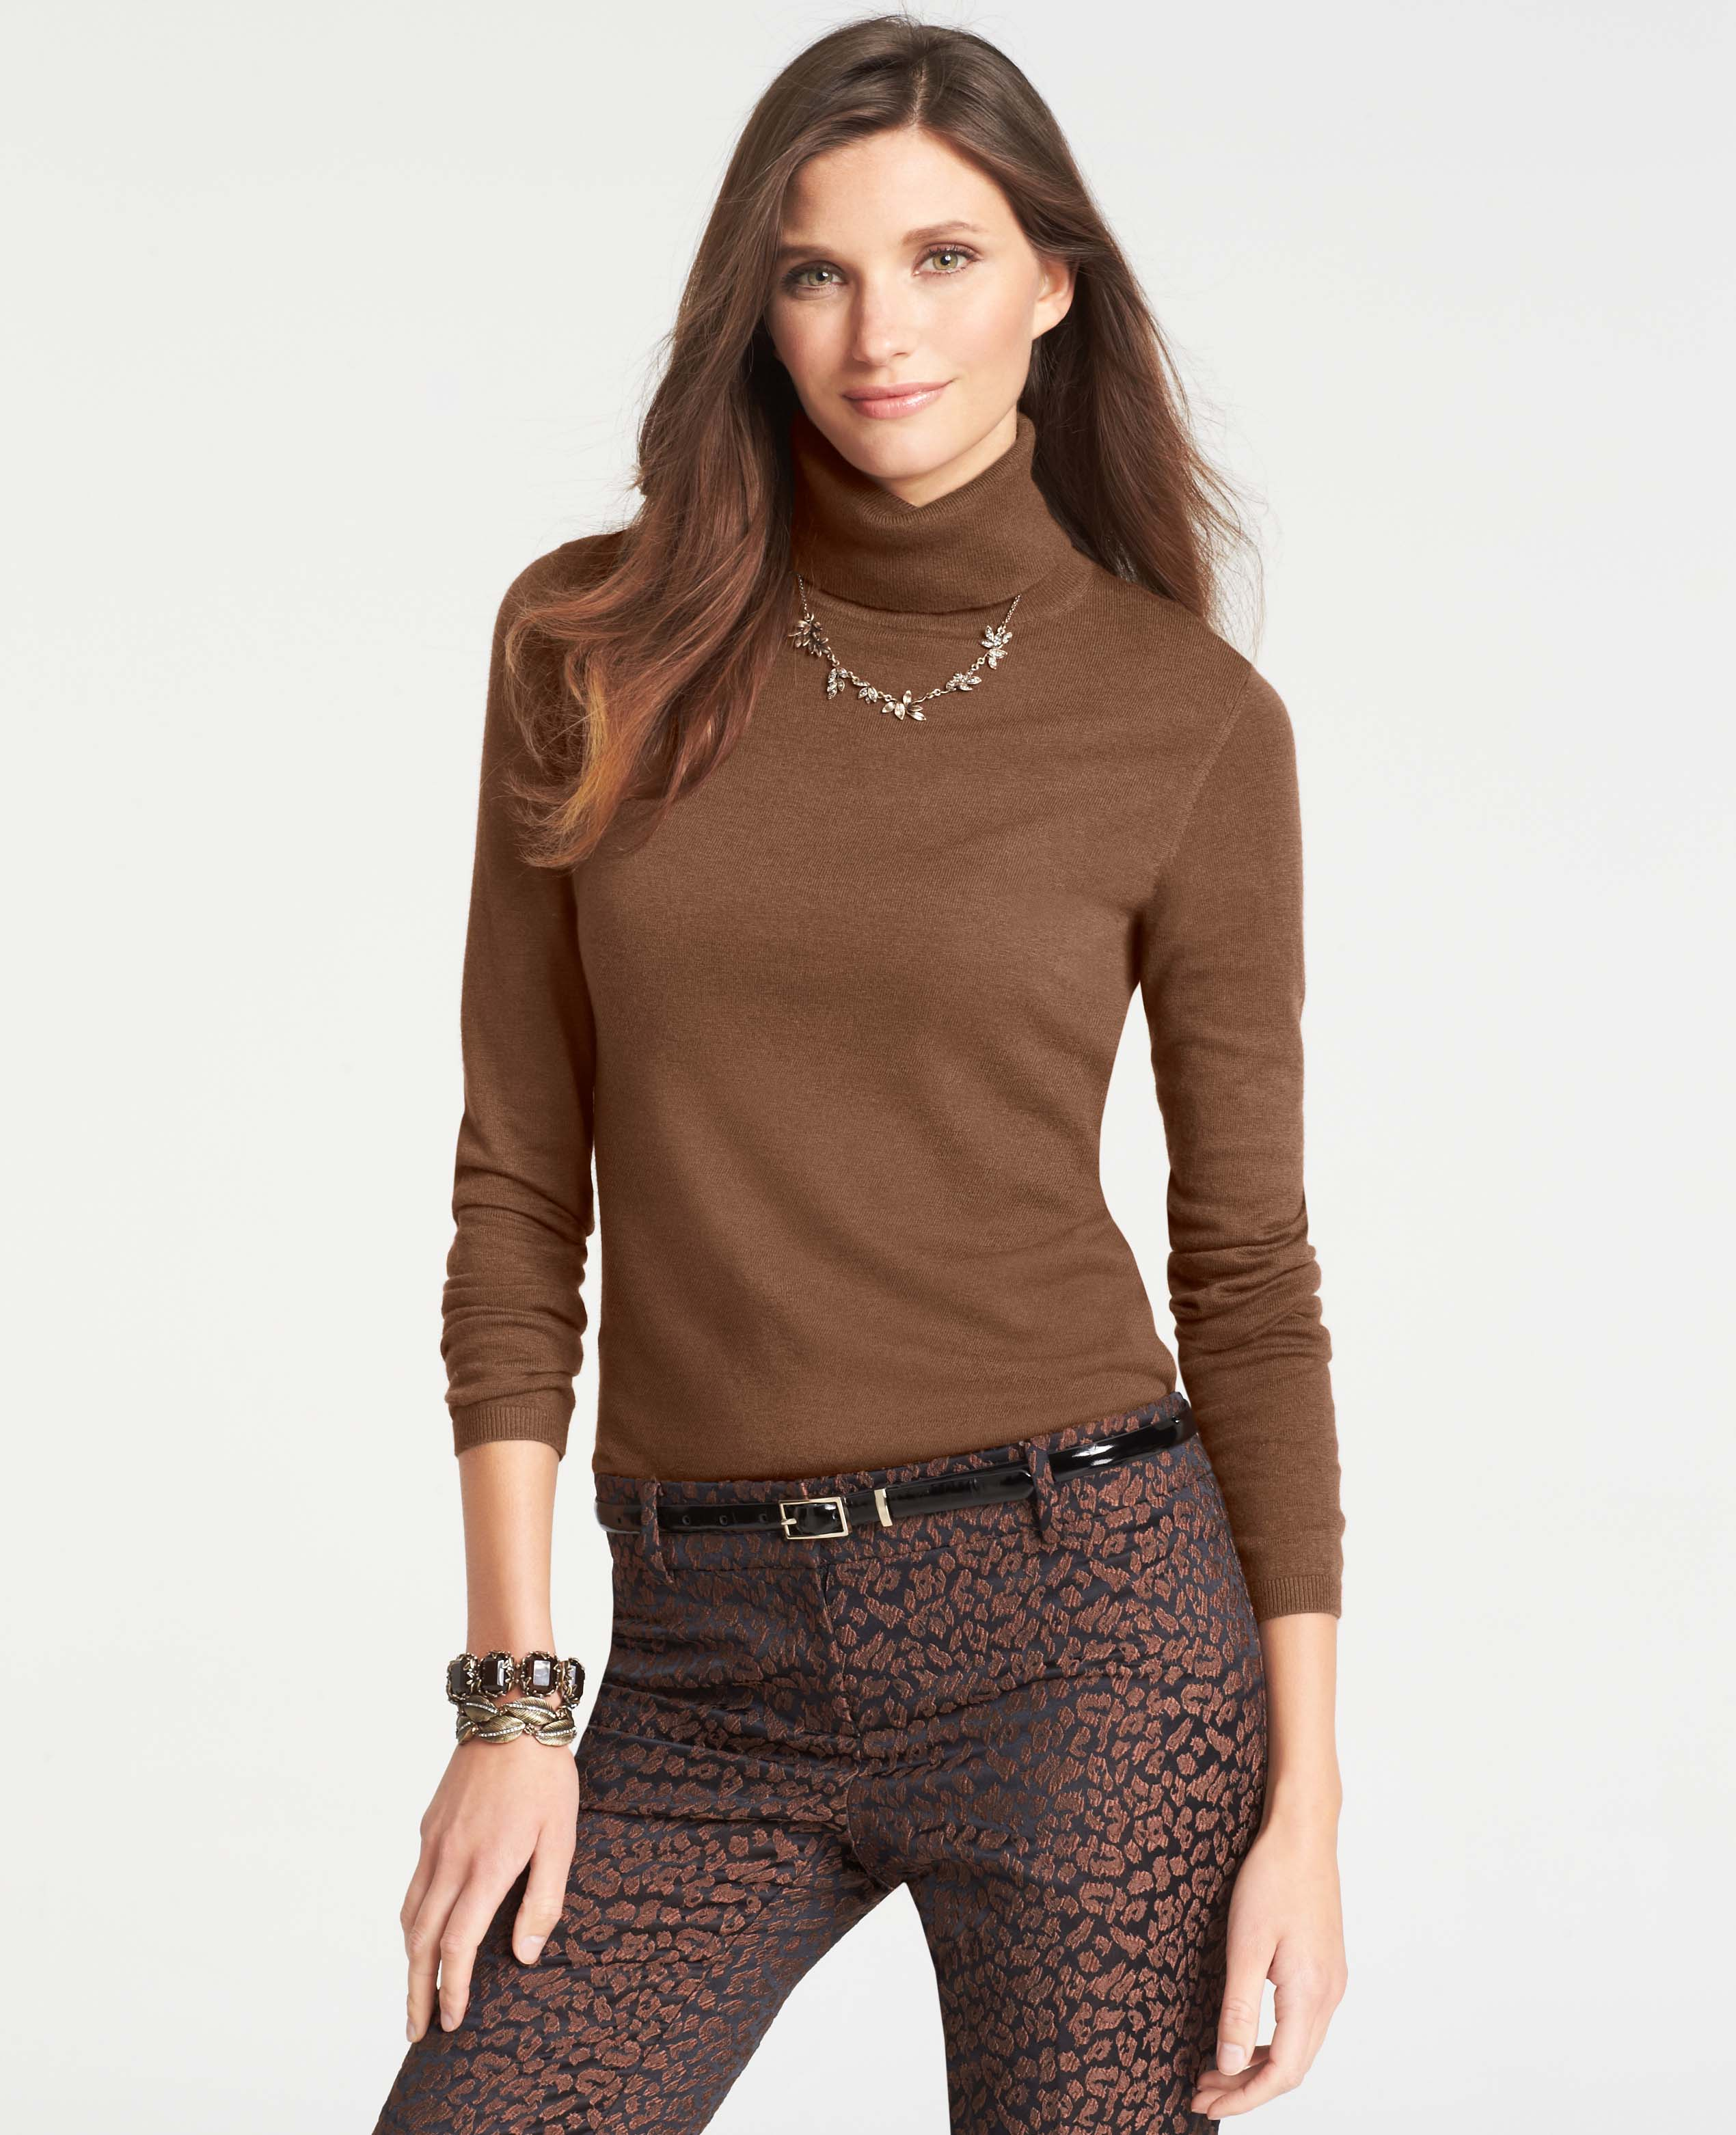 Women's Ann Taylor Necklaces Established in by Richard Liebeskind, the Ann Taylor brand is synonymous with feminine fashion, with beautiful pieces to complement women of every size. For over fifty years, the womenswear brand has evolved with the needs of real women who live full, active lives.